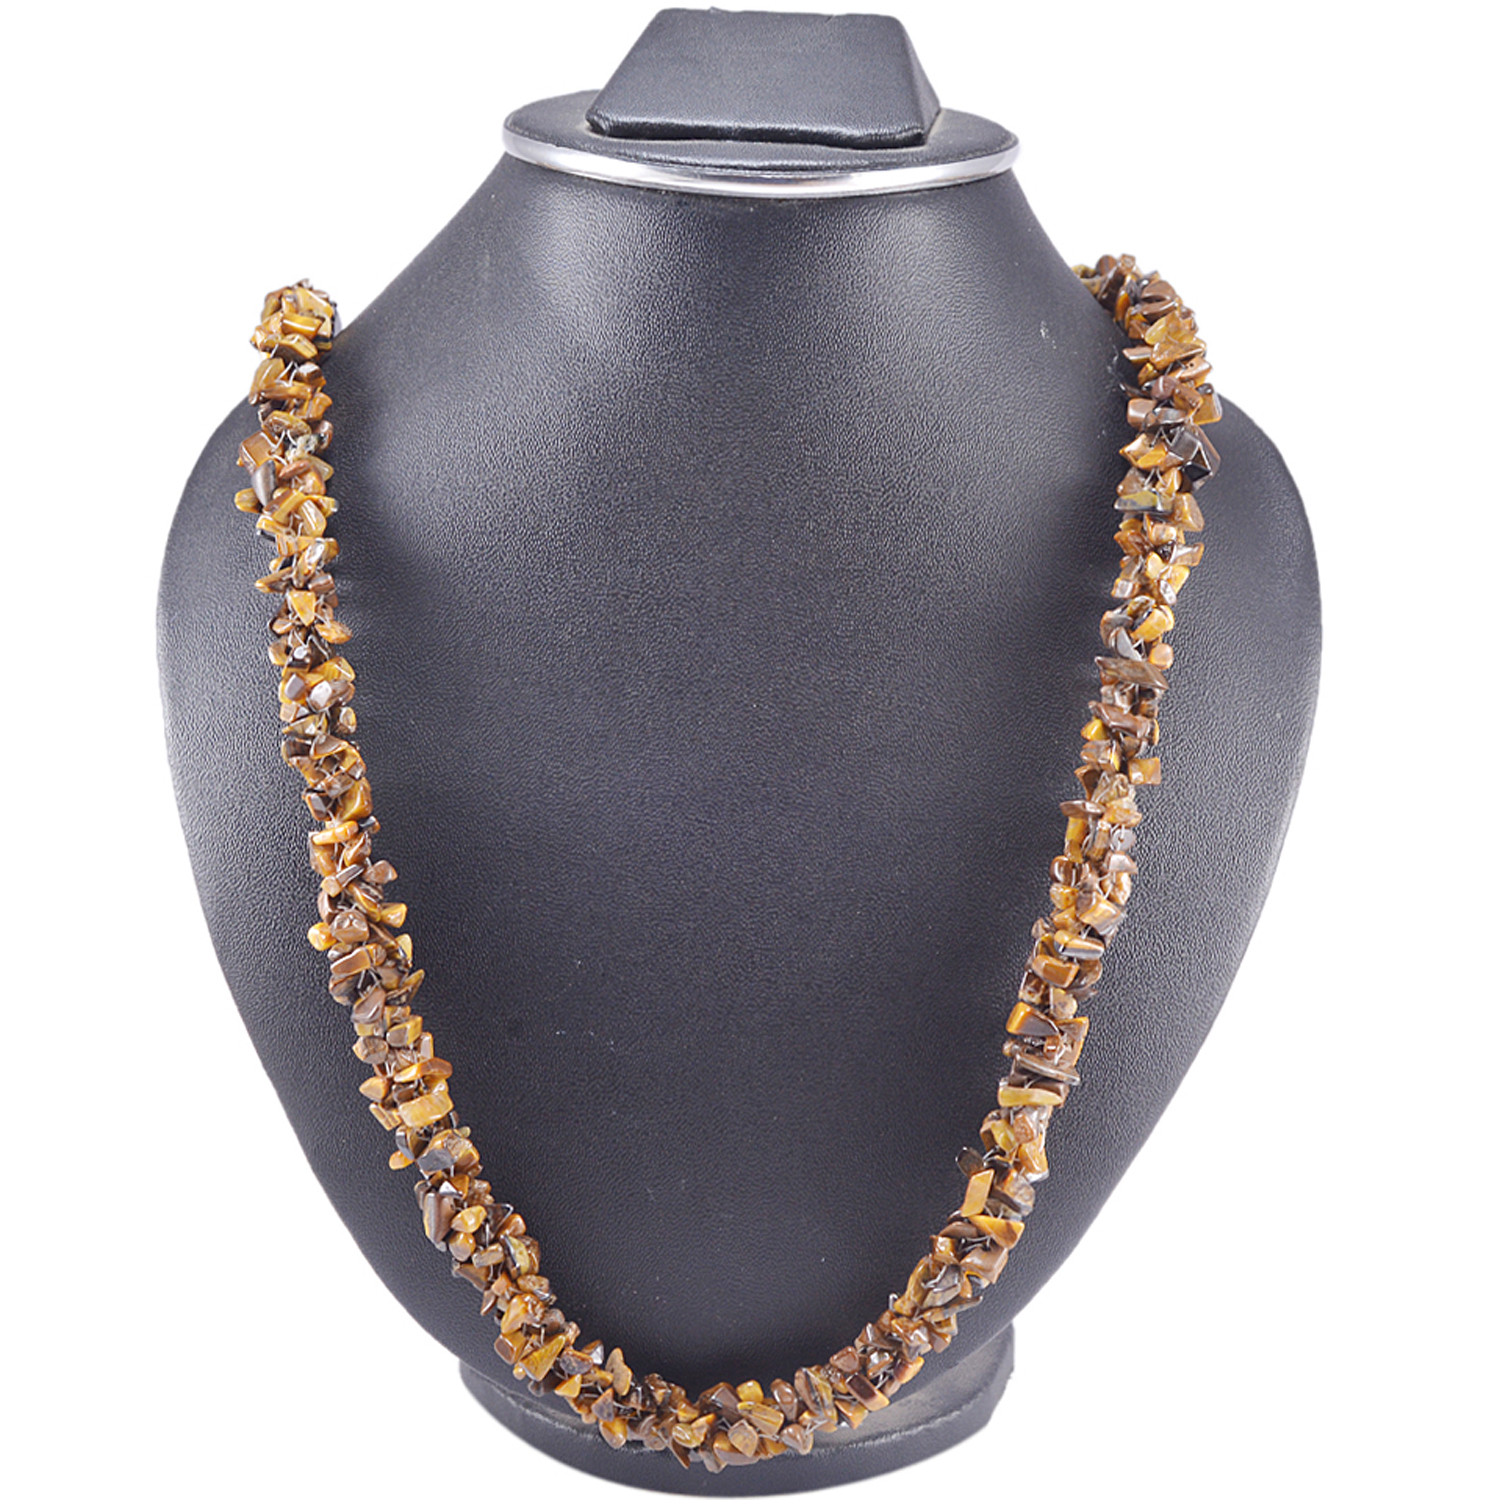 Handmade Jewelry Manufacturer 925 Sterling Silver 1 Strand Small Uncut Tiger's Eye Chips Necklace Jaipur Rajasthan India